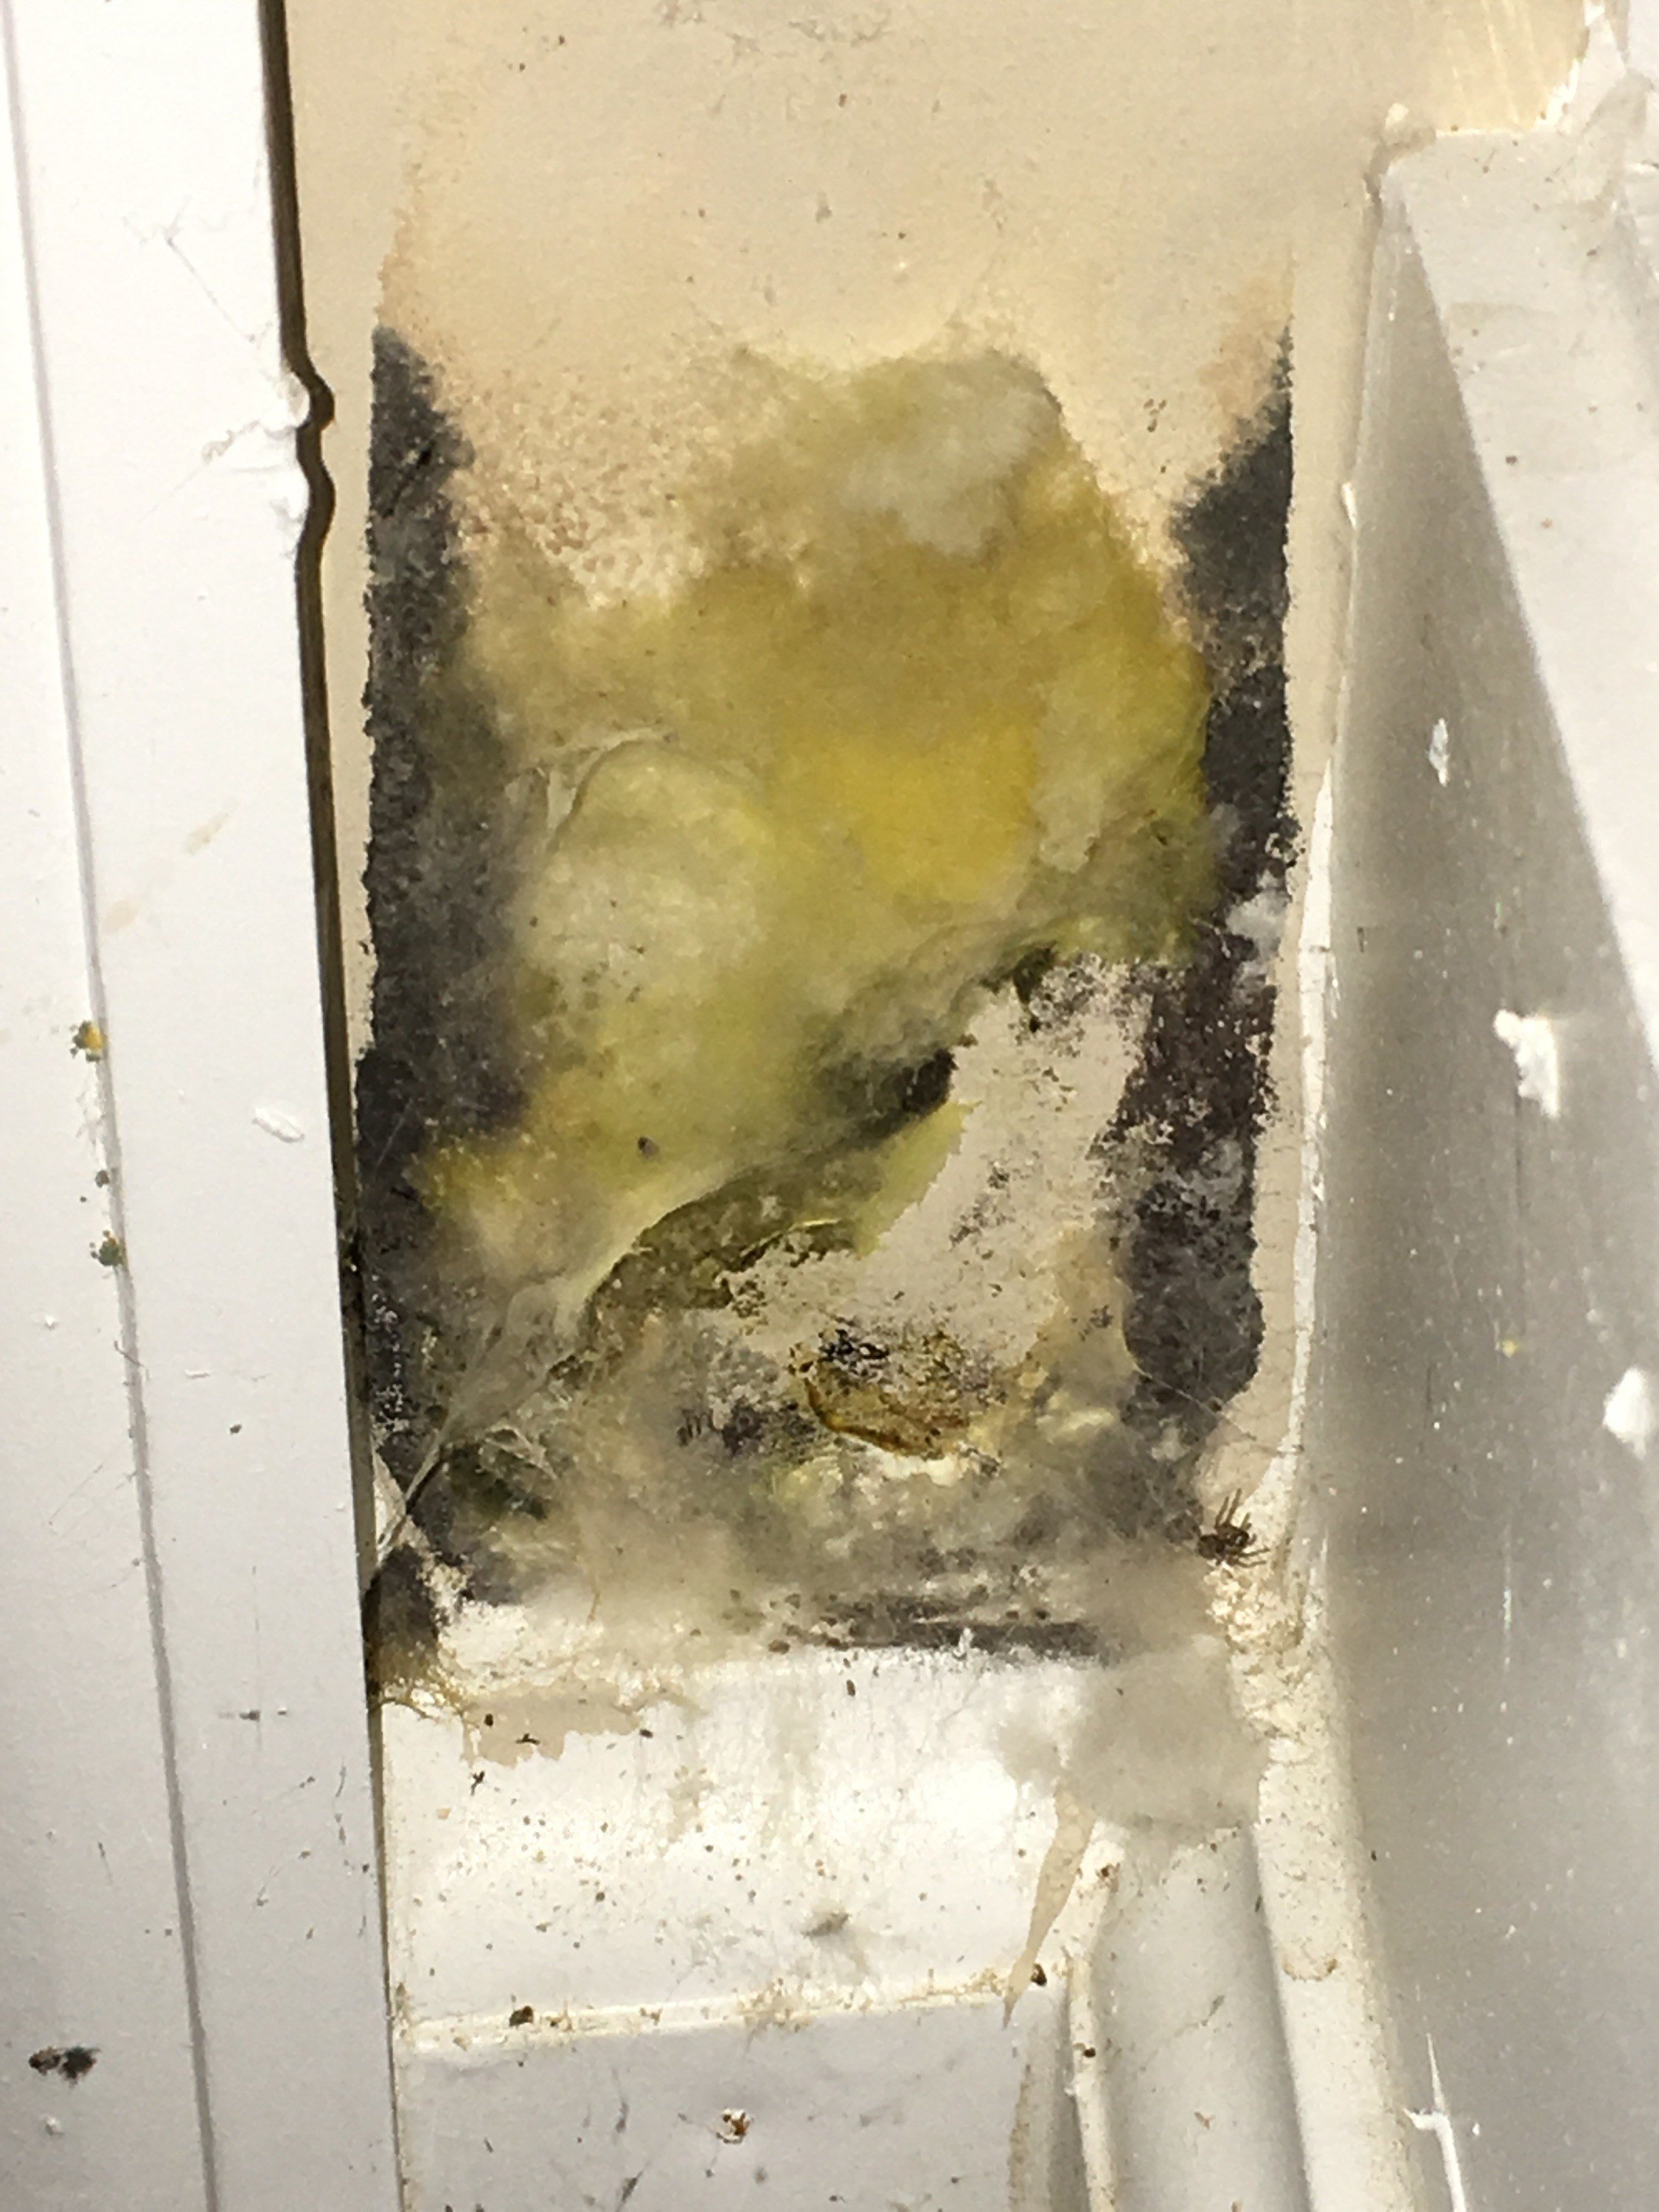 Best Mould In Bedroom Causing Cough Www Indiepedia Org With Pictures